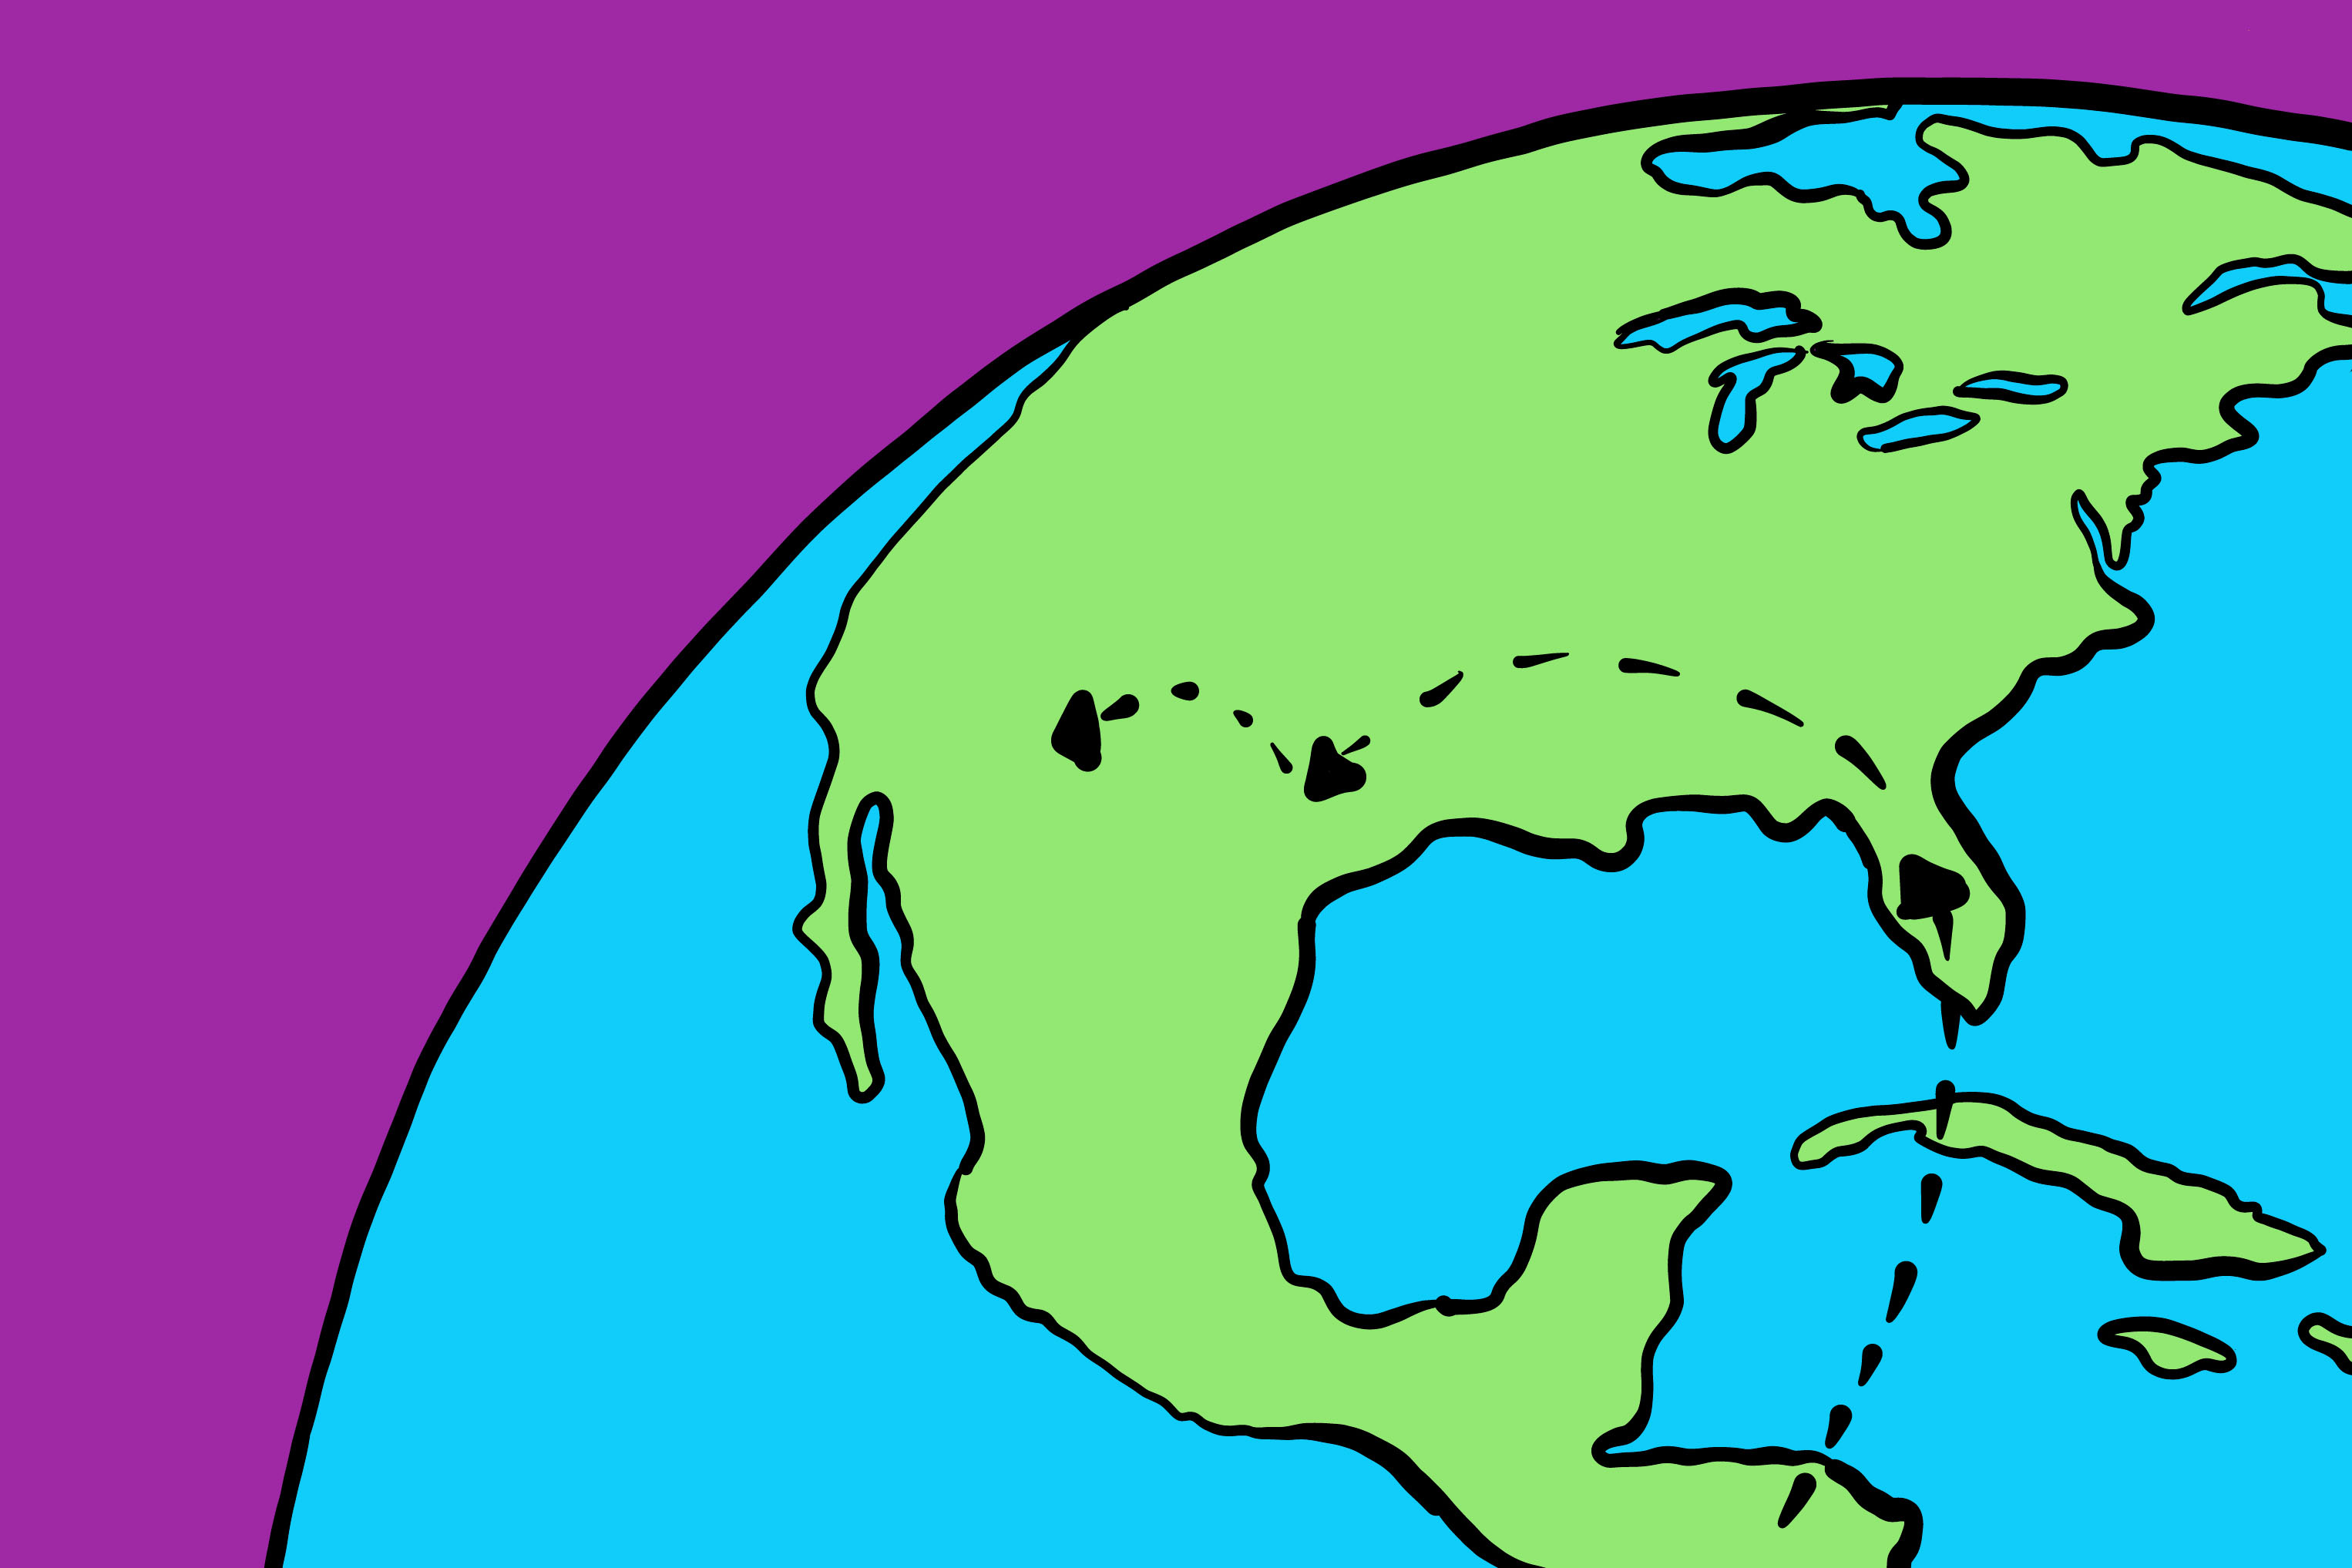 illustration of the earth on a purple background showing a dotted line that starts in Honduras with stopping points across the United States